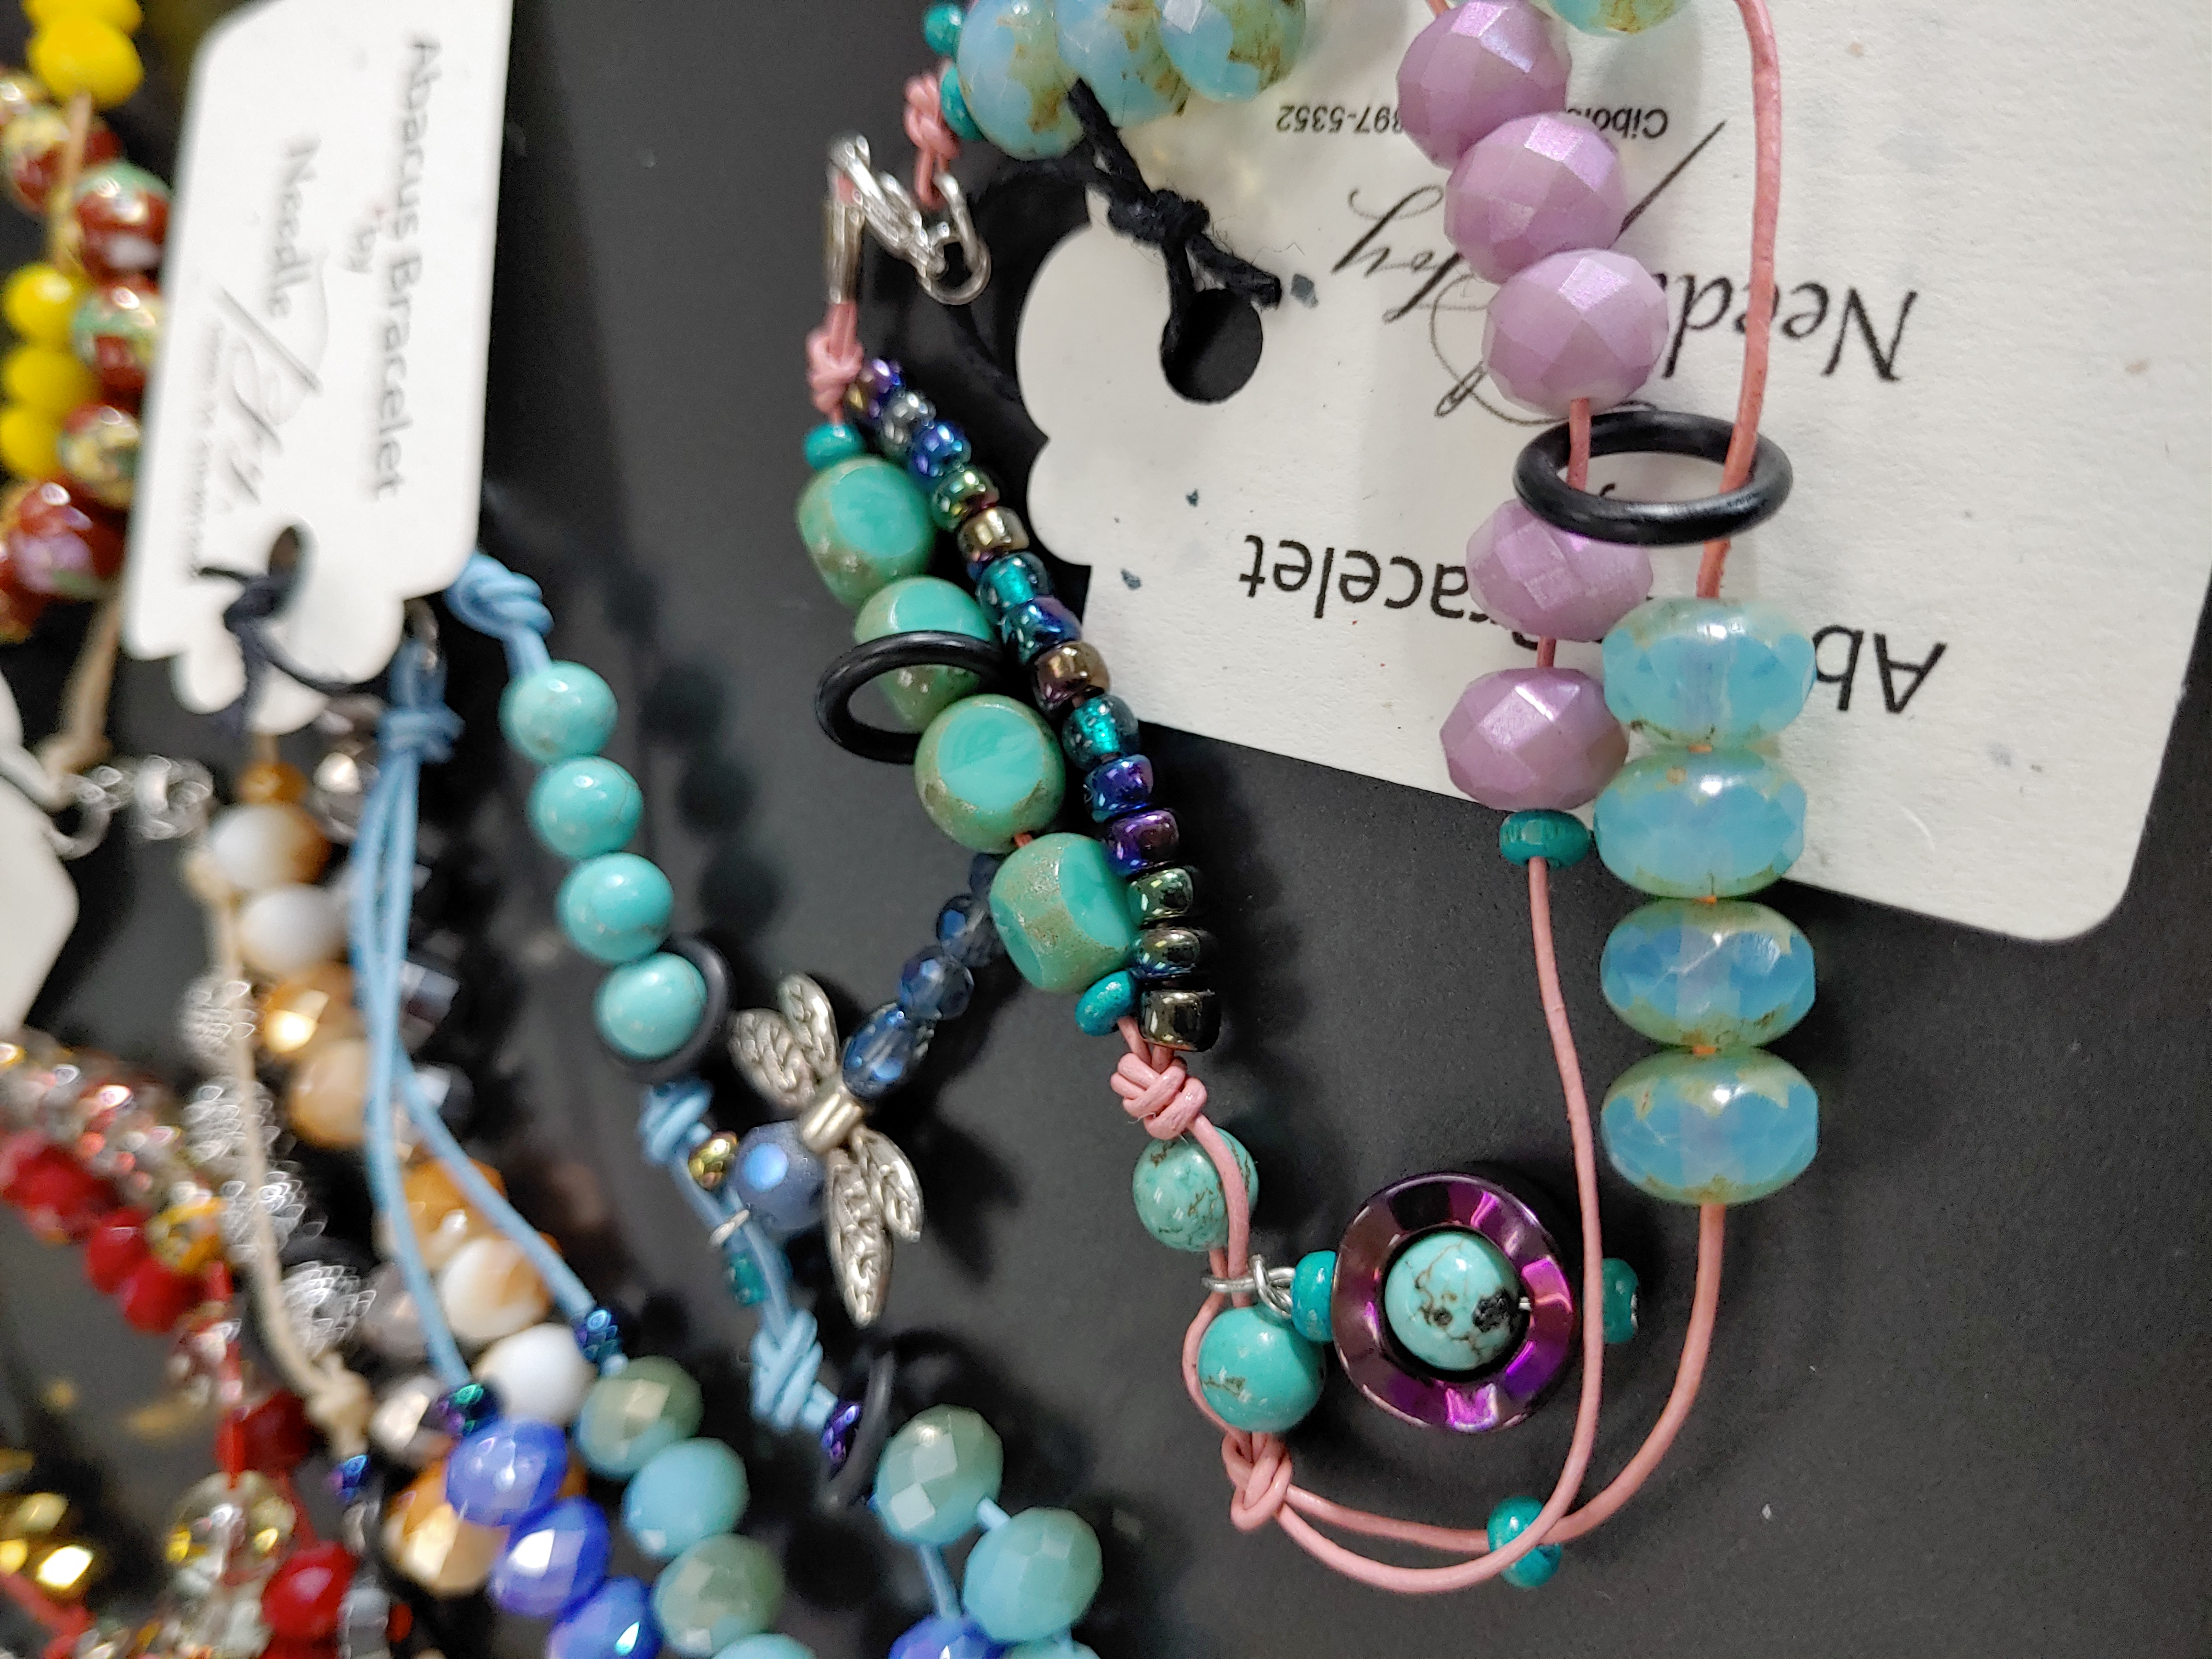 beaded row counter bracelets in various colors, with a pink/blue/purple one in the foreground